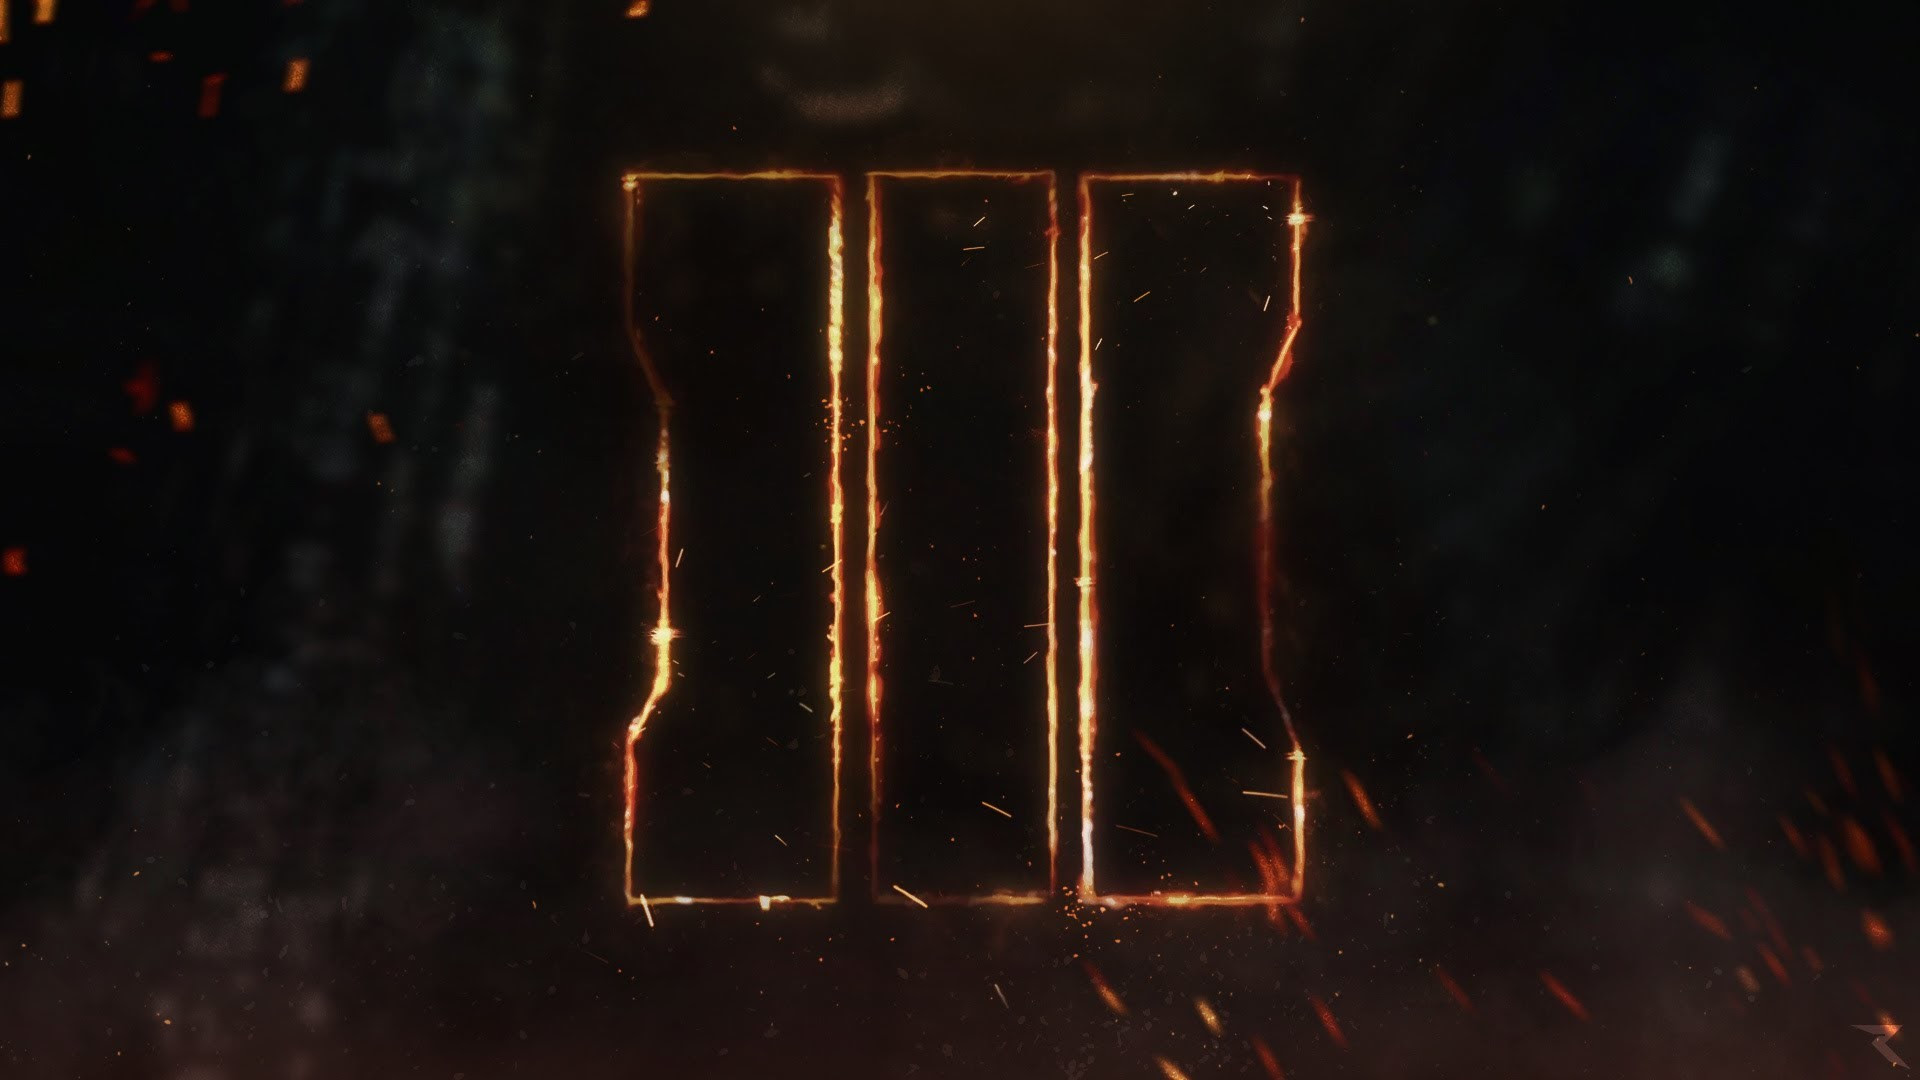 Call Of Duty Black Ops 3 Specialist Prophet Wallpaper